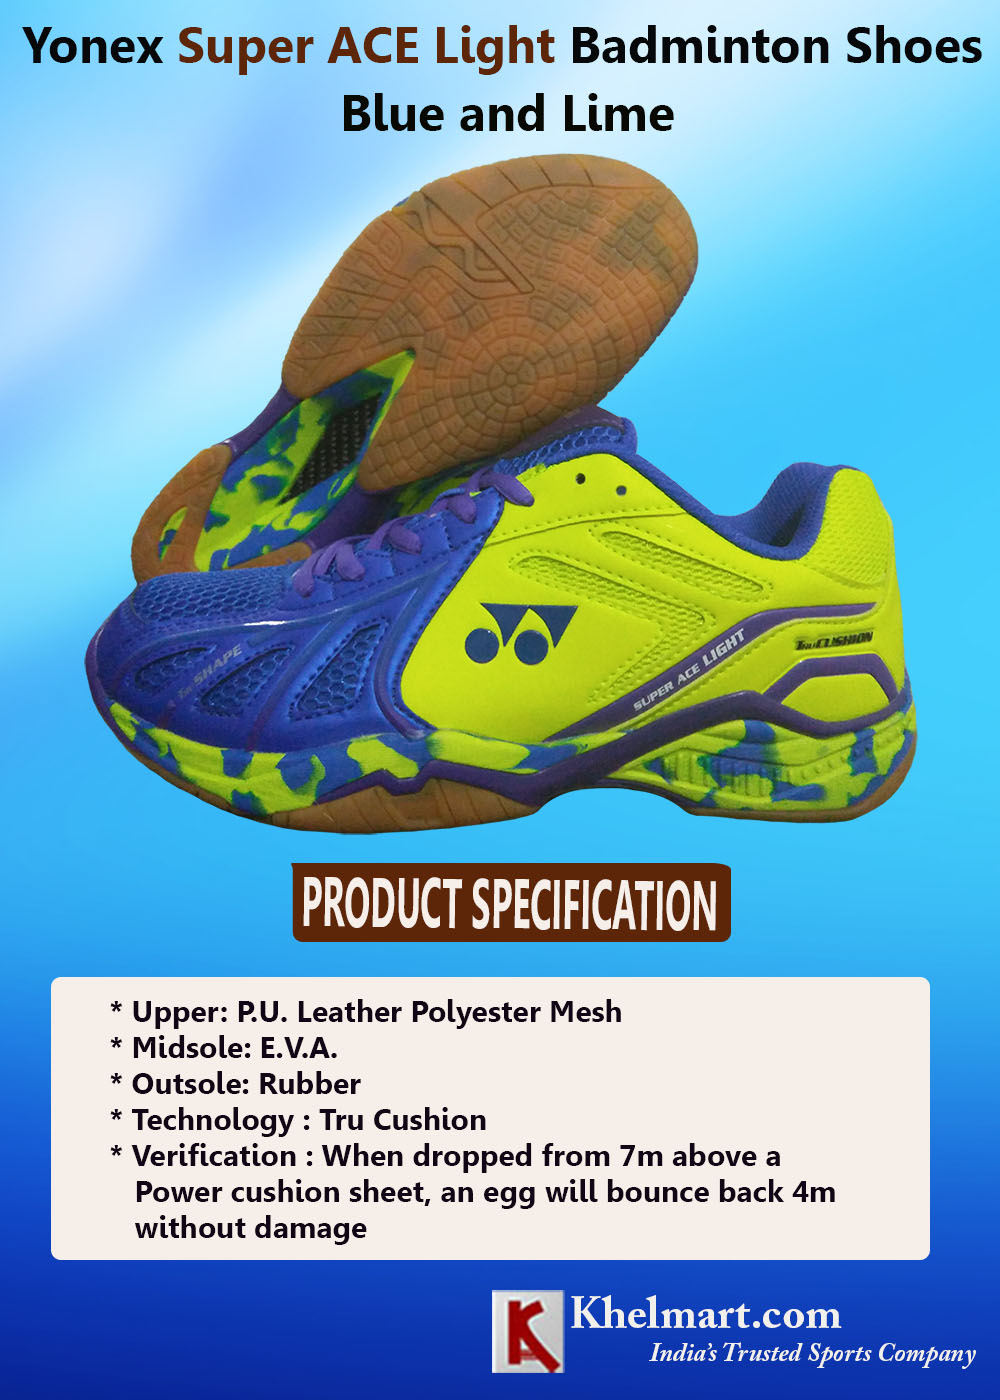 Yonex-Super-ACE-Light-Badminton-Shoes-Blue-and-Lime.jpg